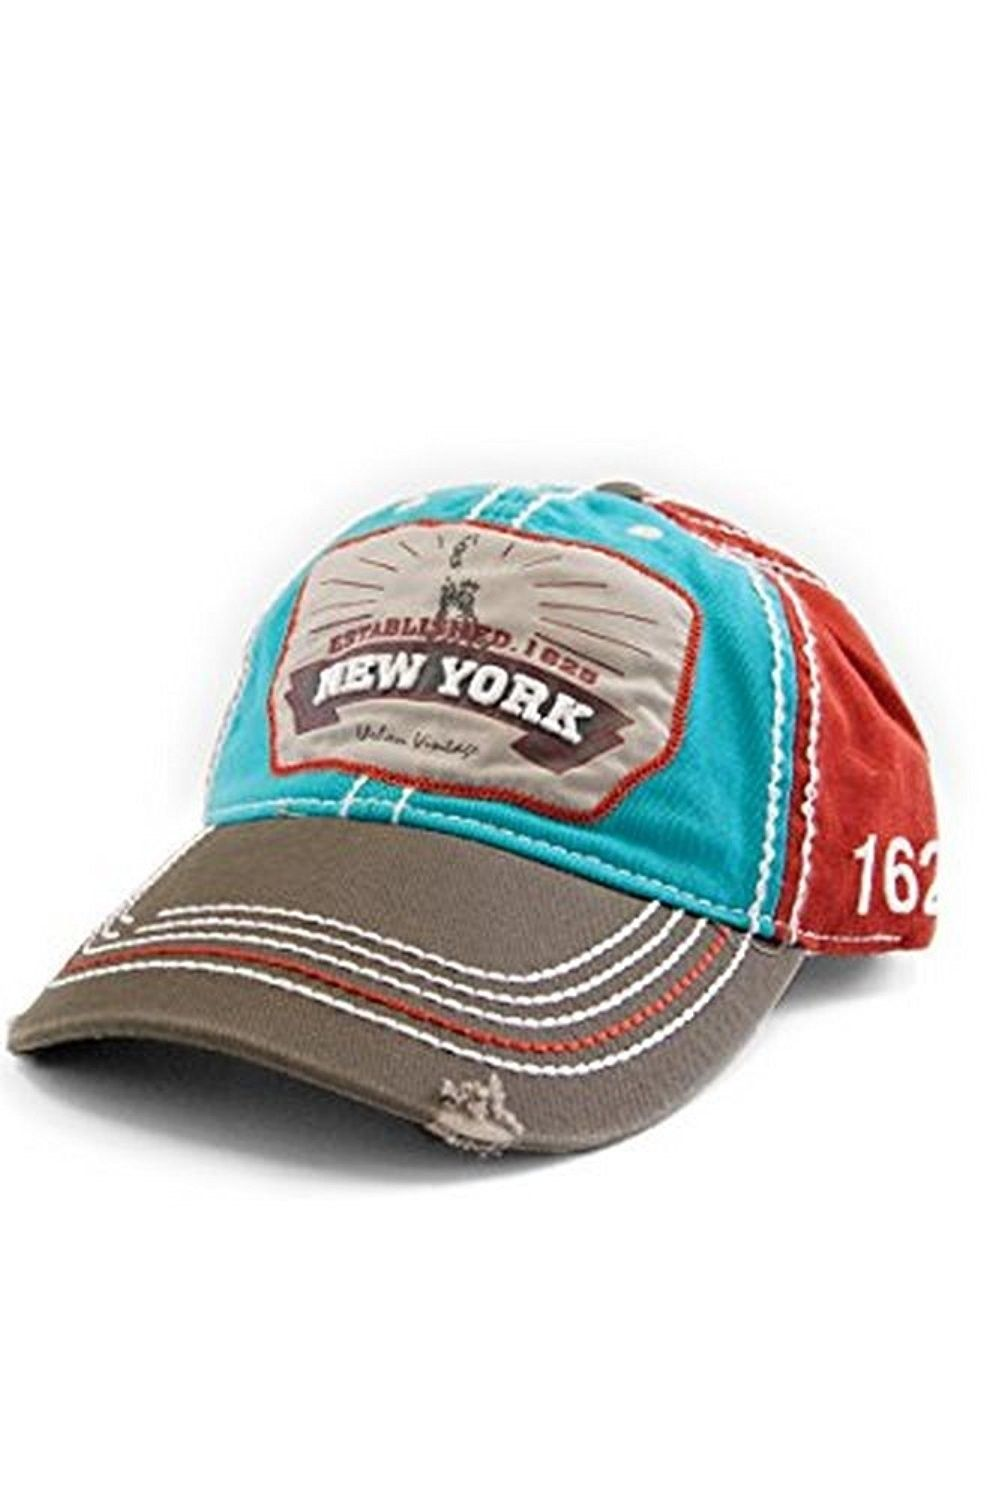 New York 1625 Vintage Baseball Cap (25 Styles Available) - Red Turq Grey -  CV129HS1BDH - Hats   Caps 17535def7a5